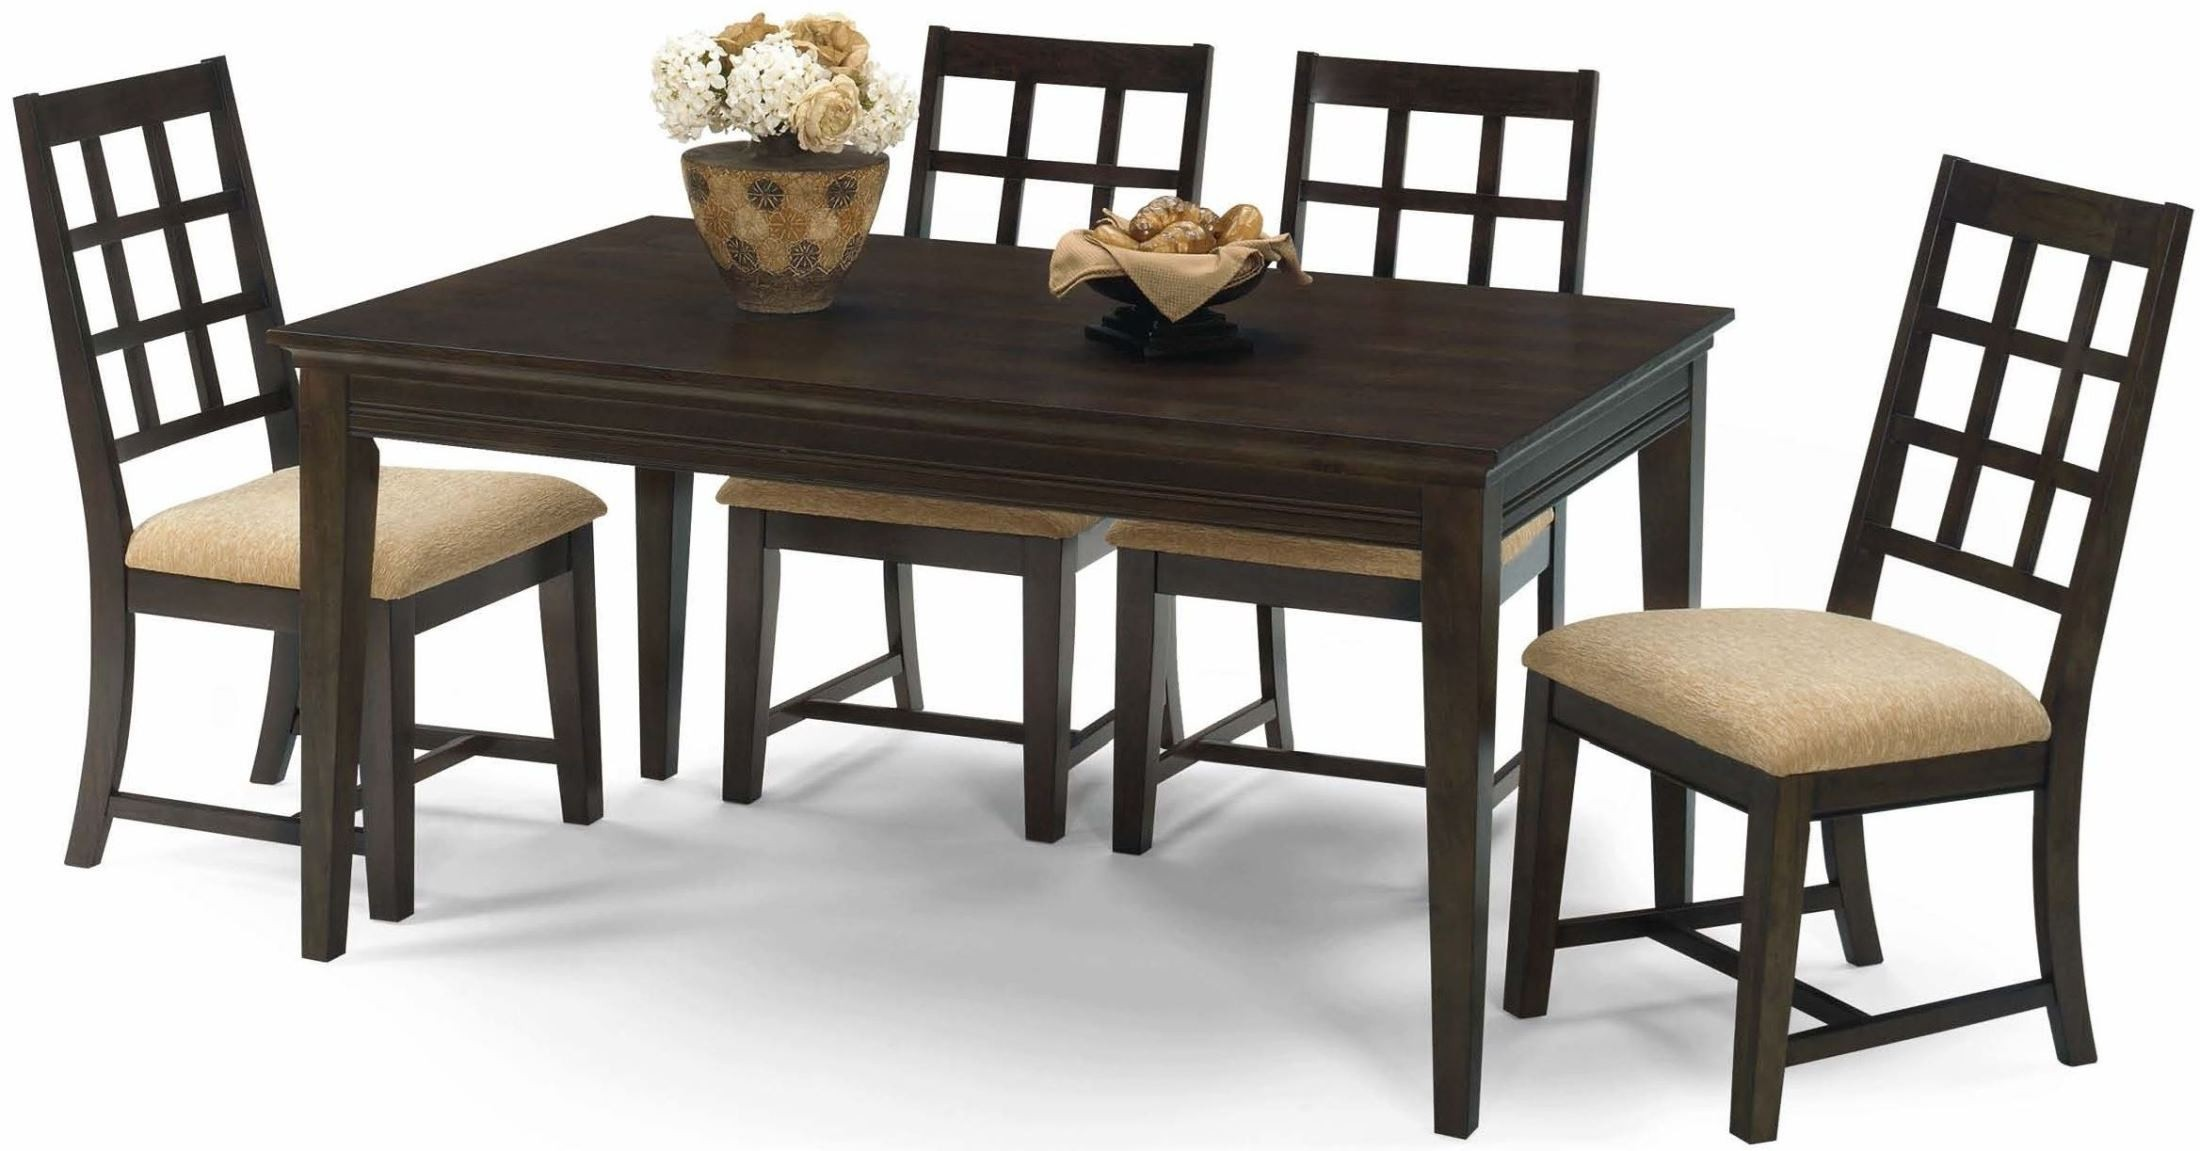 Casual traditions walnut rectangular dining room set from for Casual dining room furniture